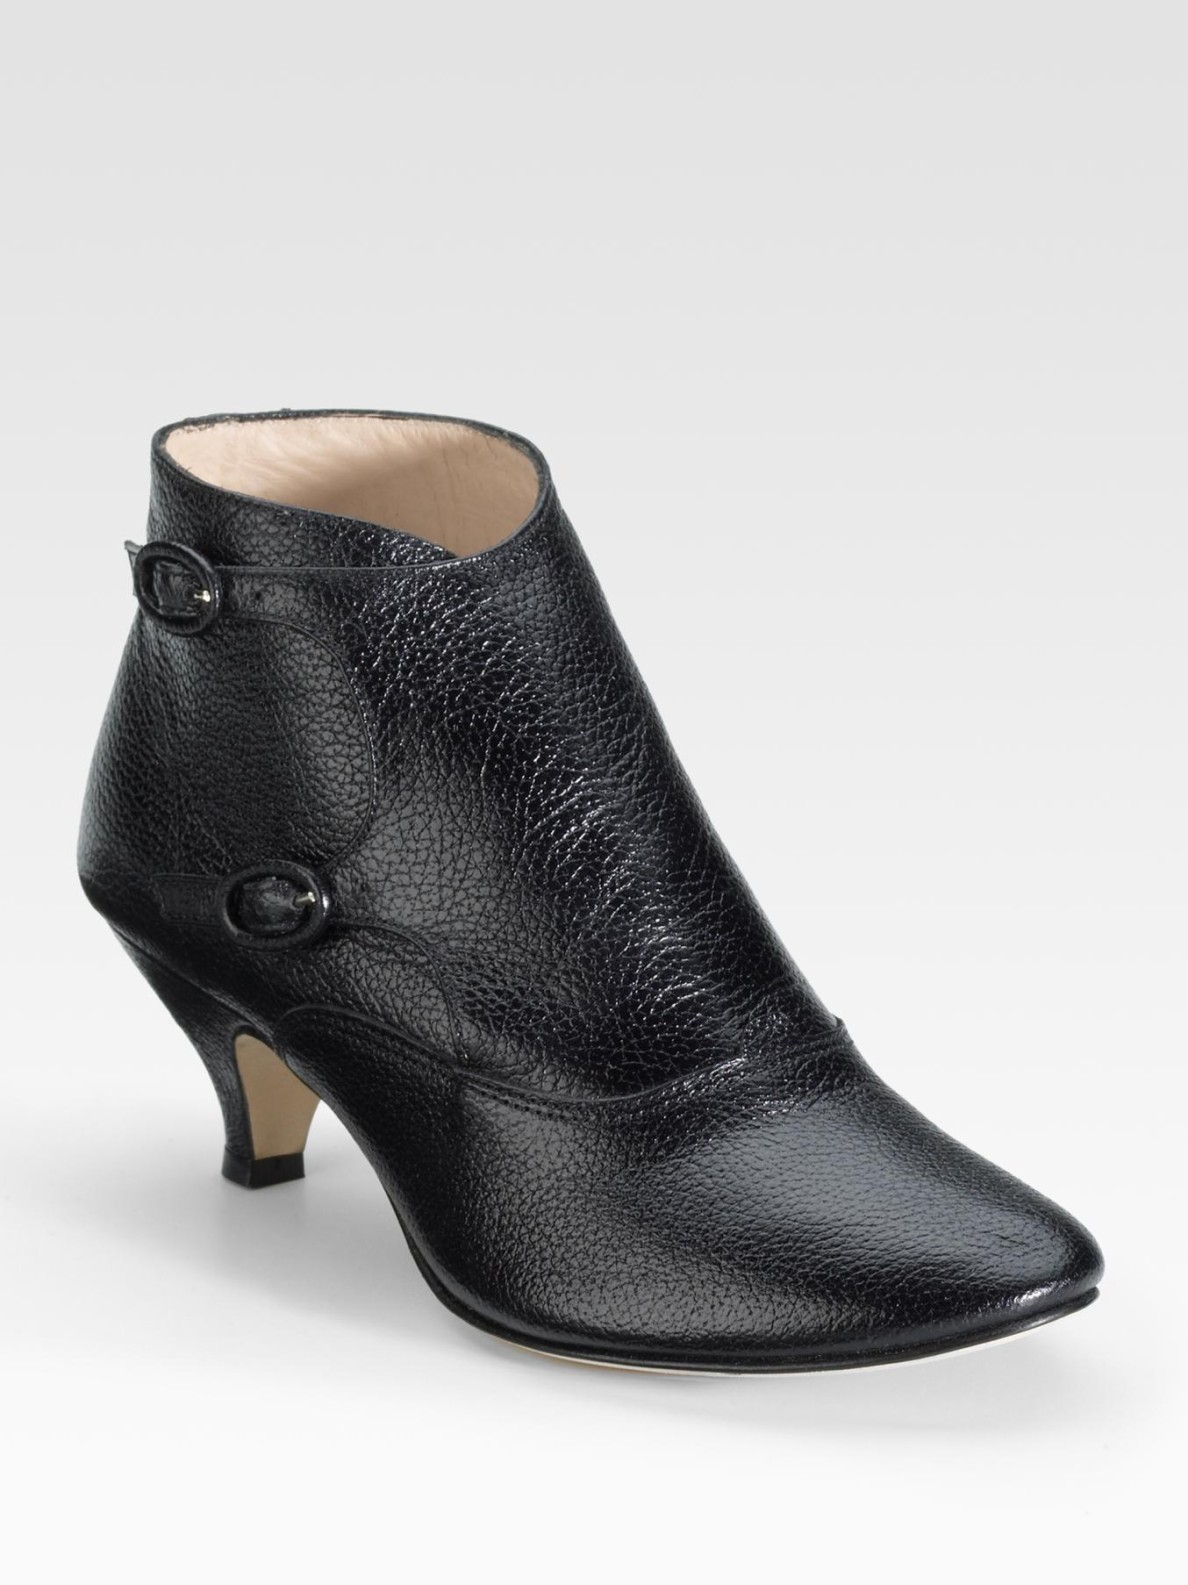 repetto marlon low heel ankle boots in black lyst